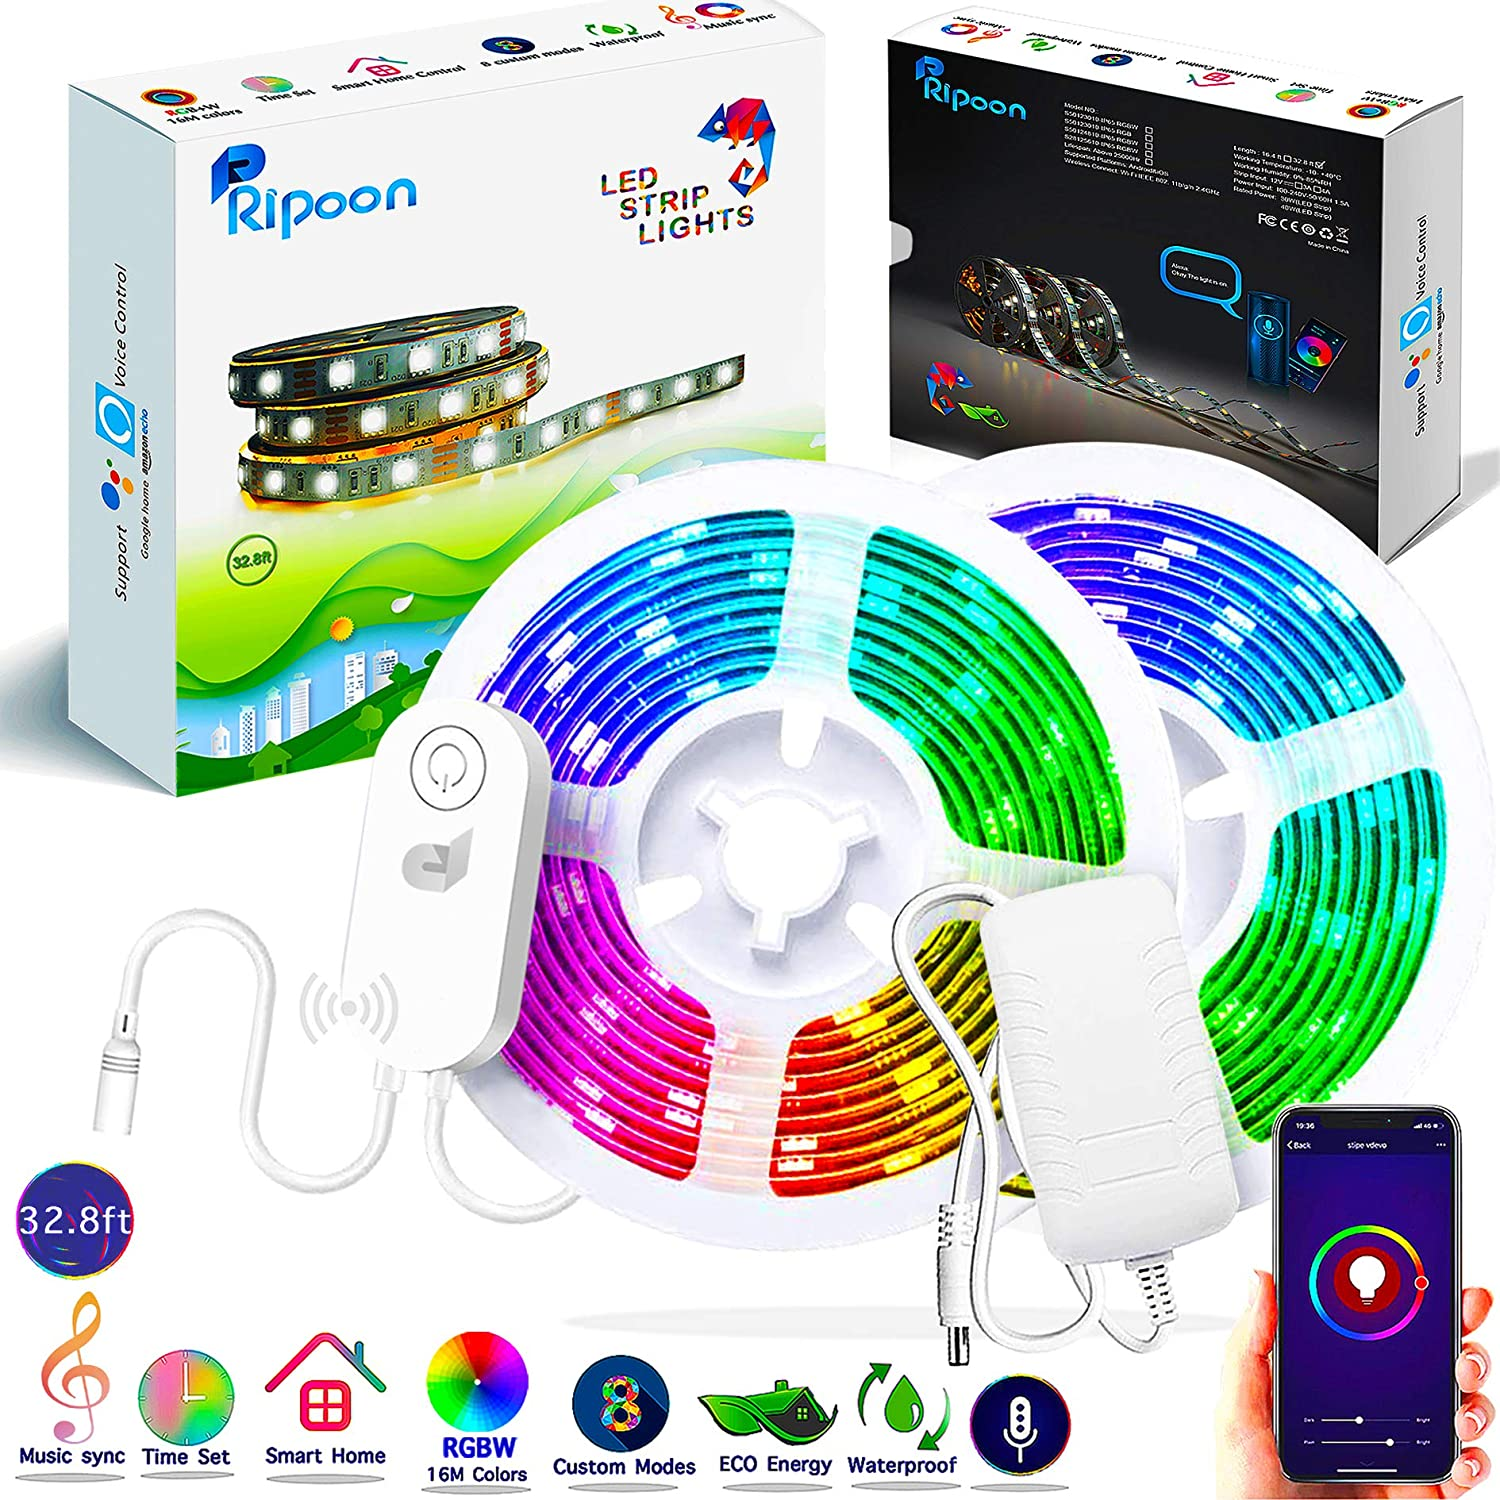 Ripoon Smart LED Strip Lights   32.8ft RGB W LED Light Strip Flexible Color Changing Light Music Sync   Waterproof Rope Lights Kit App Controlled, Work with Alexa Google Home   Strong 3M Adhesive Tape